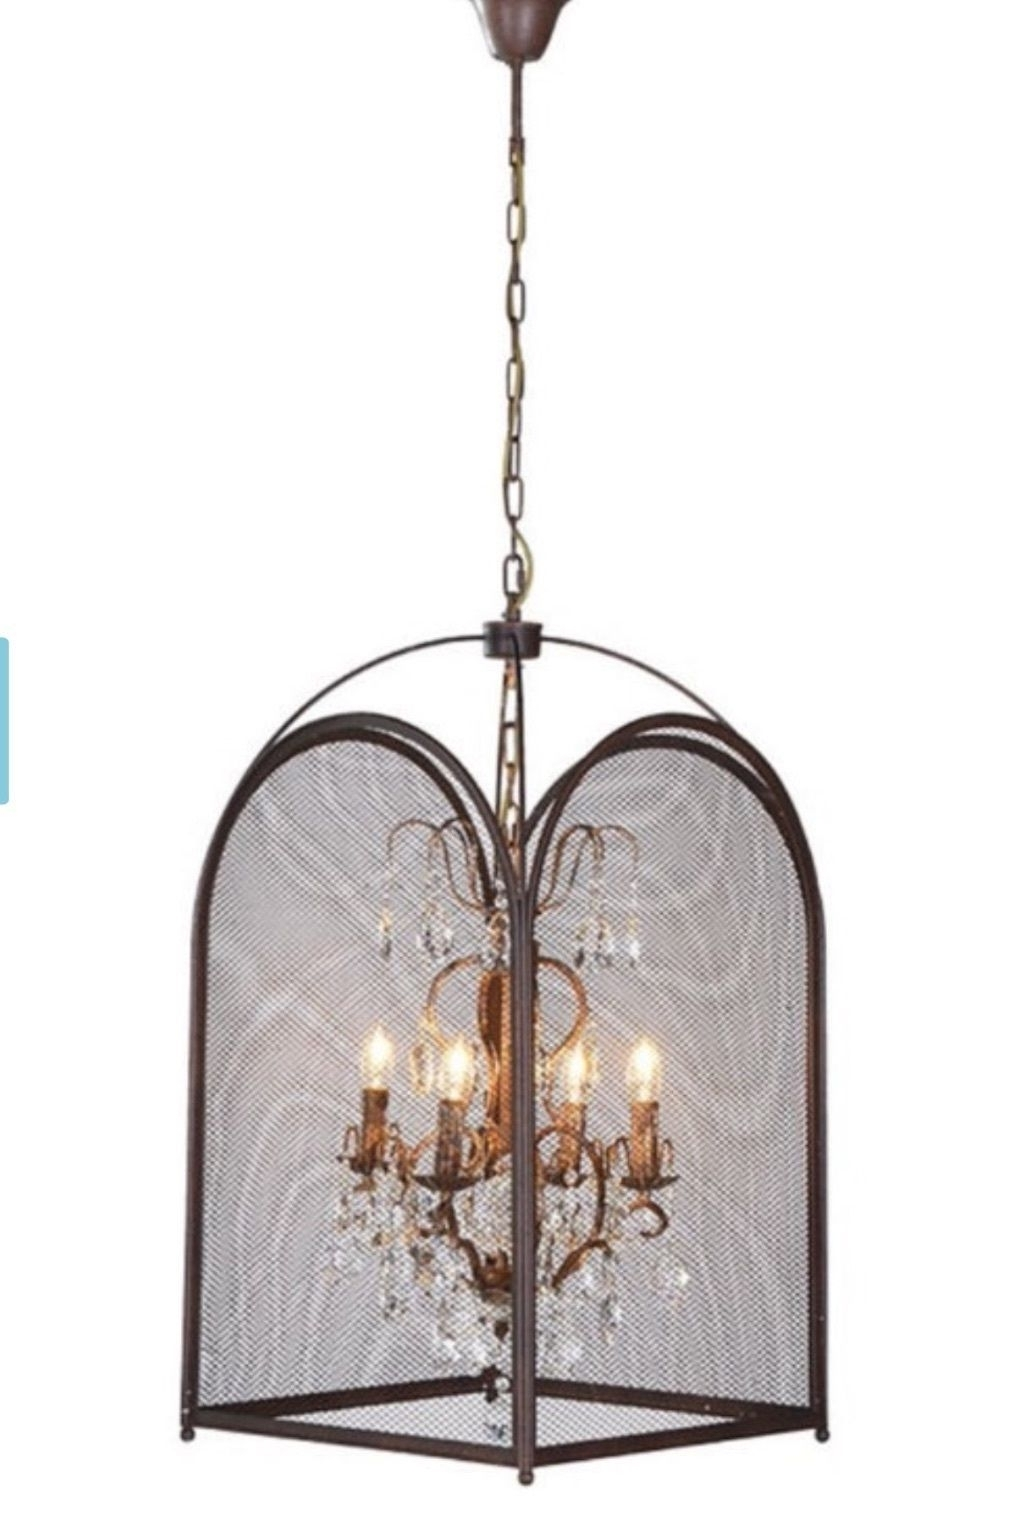 Popular Large Statement Birdcage Vintage Industrial Shabby Chic Caged Intended For Caged Chandelier (View 7 of 20)